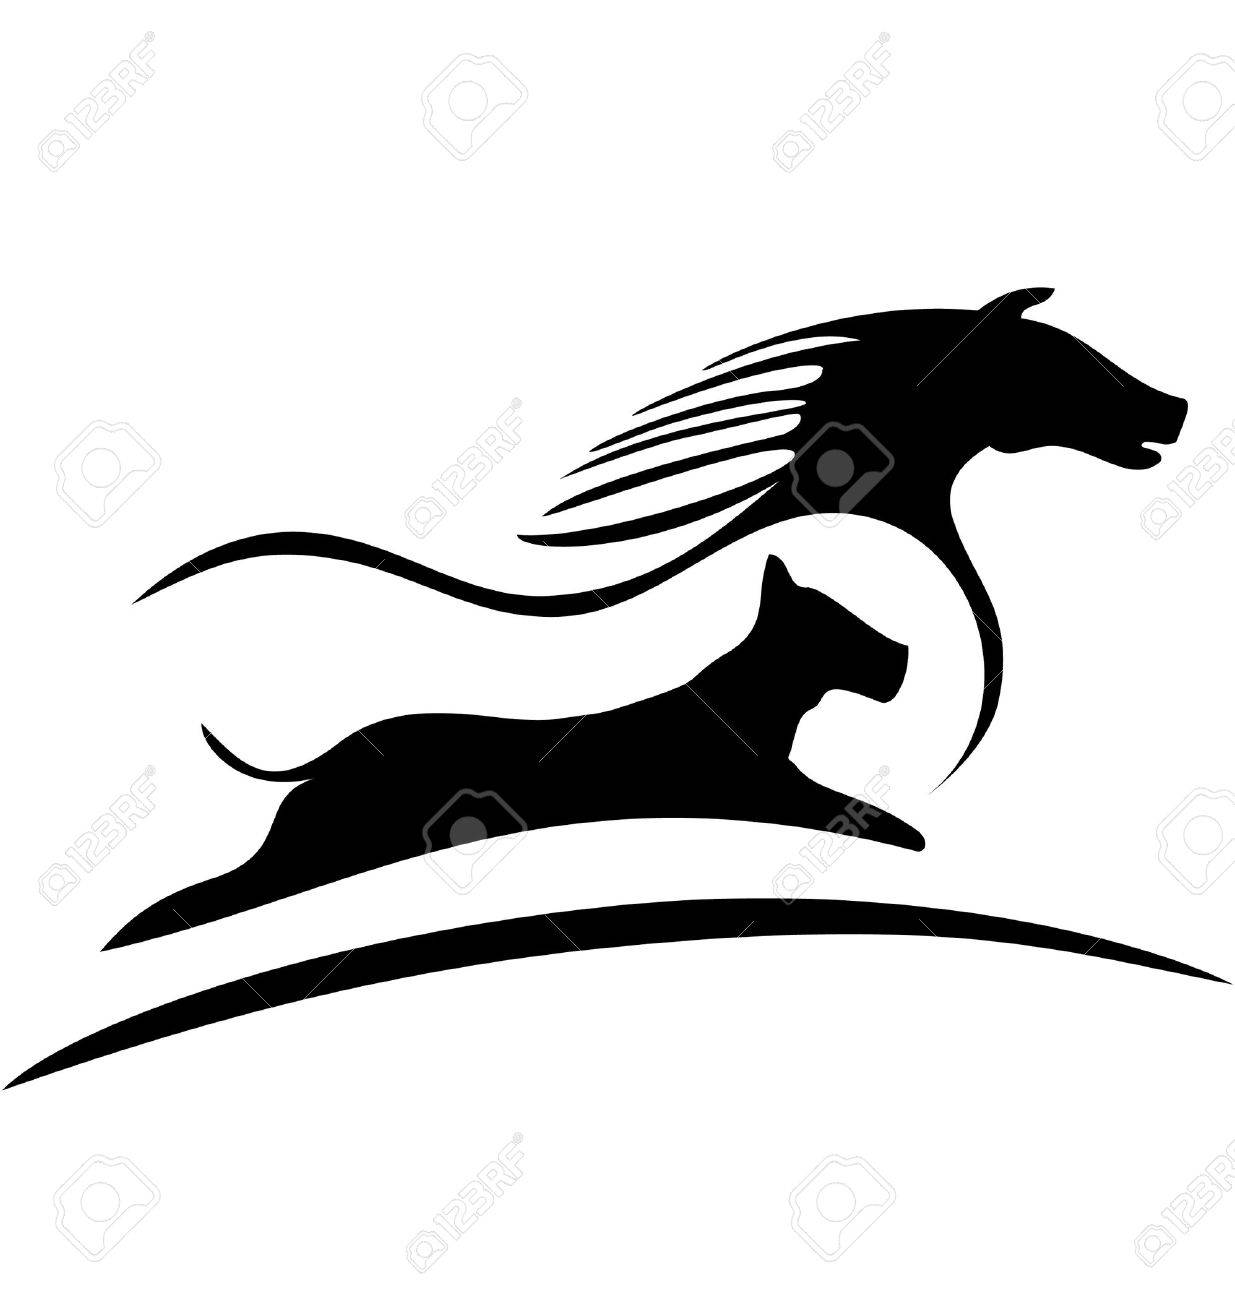 Horse And Dog Racing Logo Royalty Free Cliparts Vectors And Stock Illustration Image 14010971